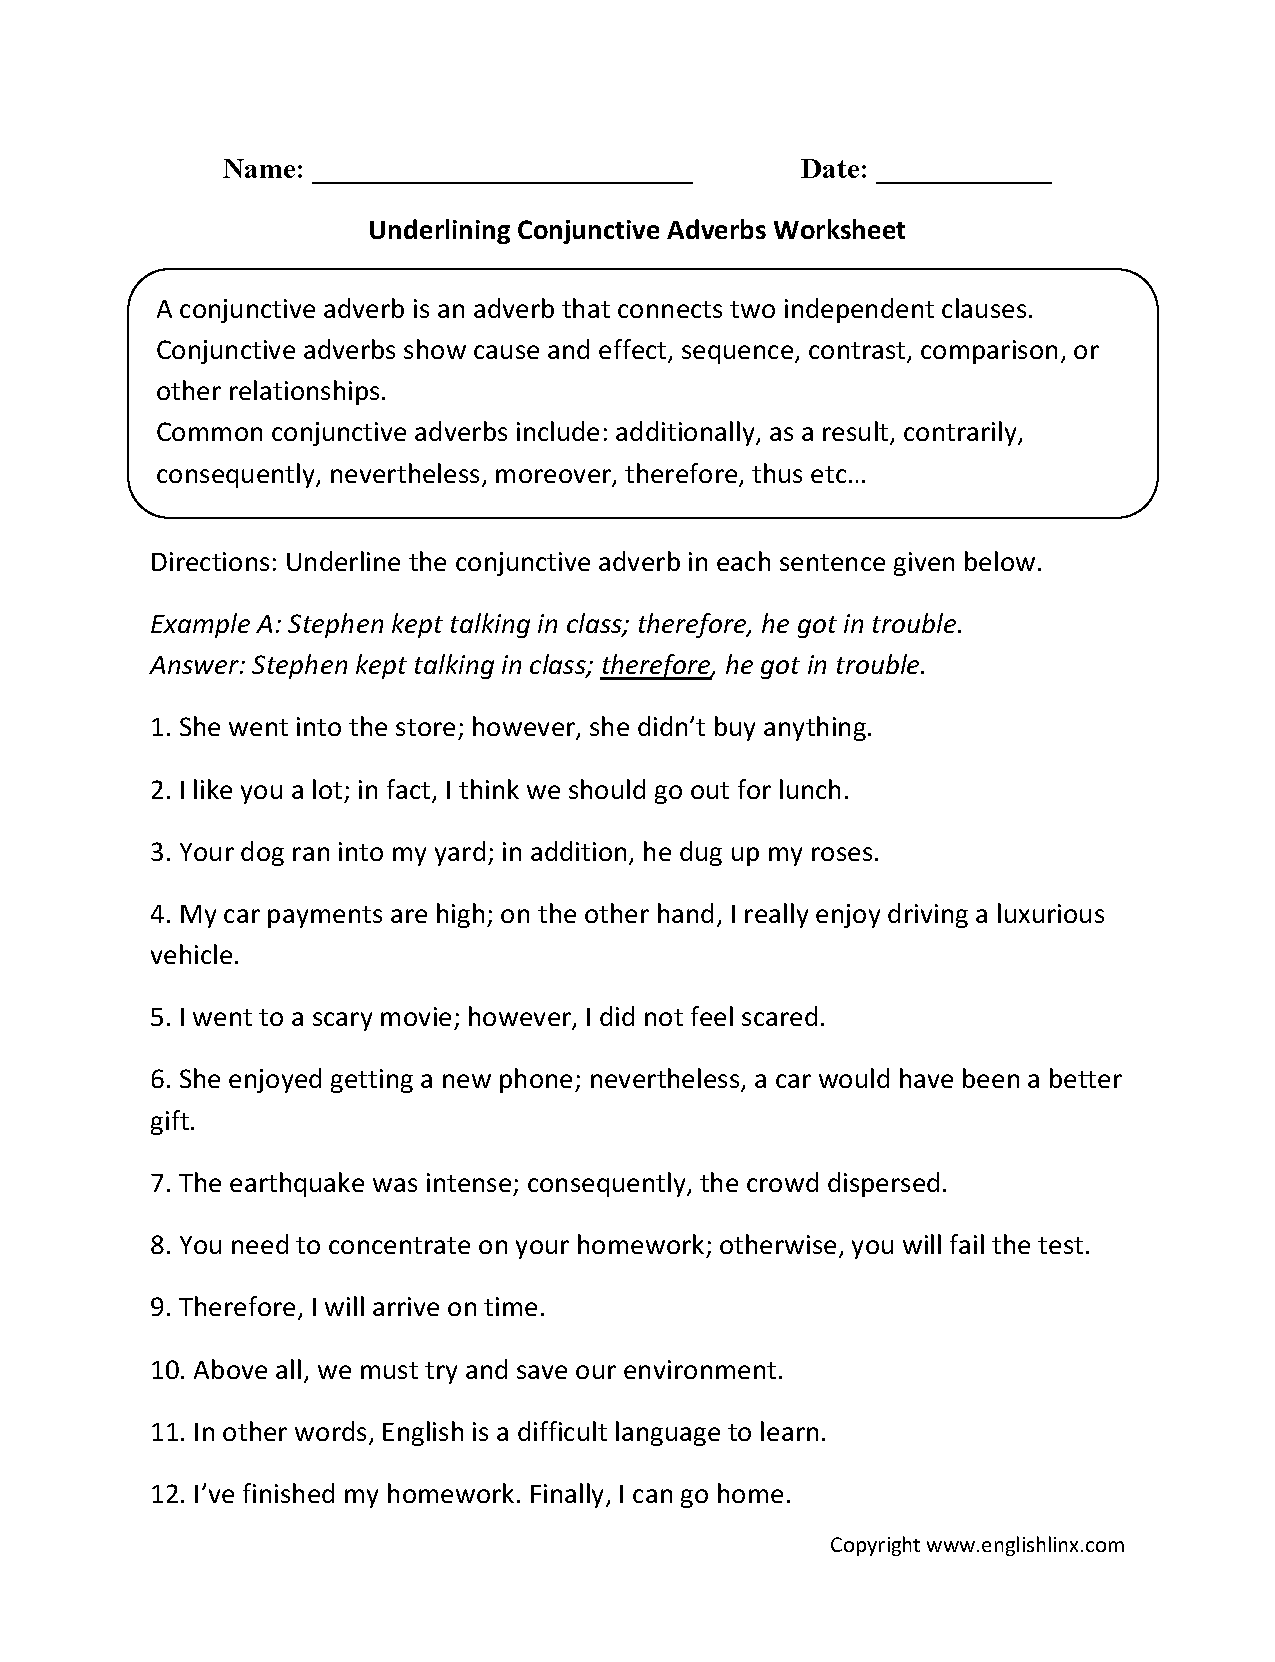 Weirdmailus  Gorgeous Englishlinxcom  Conjunctions Worksheets With Inspiring Worksheet With Comely Circle Area And Circumference Worksheet Also Monohybrid Punnett Square Worksheet In Addition Free Printable Math Worksheets For Th Grade Multiplication And Addition Worksheets Second Grade As Well As Social Studies Worksheets Pdf Additionally Nomenclature Worksheets From Englishlinxcom With Weirdmailus  Inspiring Englishlinxcom  Conjunctions Worksheets With Comely Worksheet And Gorgeous Circle Area And Circumference Worksheet Also Monohybrid Punnett Square Worksheet In Addition Free Printable Math Worksheets For Th Grade Multiplication From Englishlinxcom